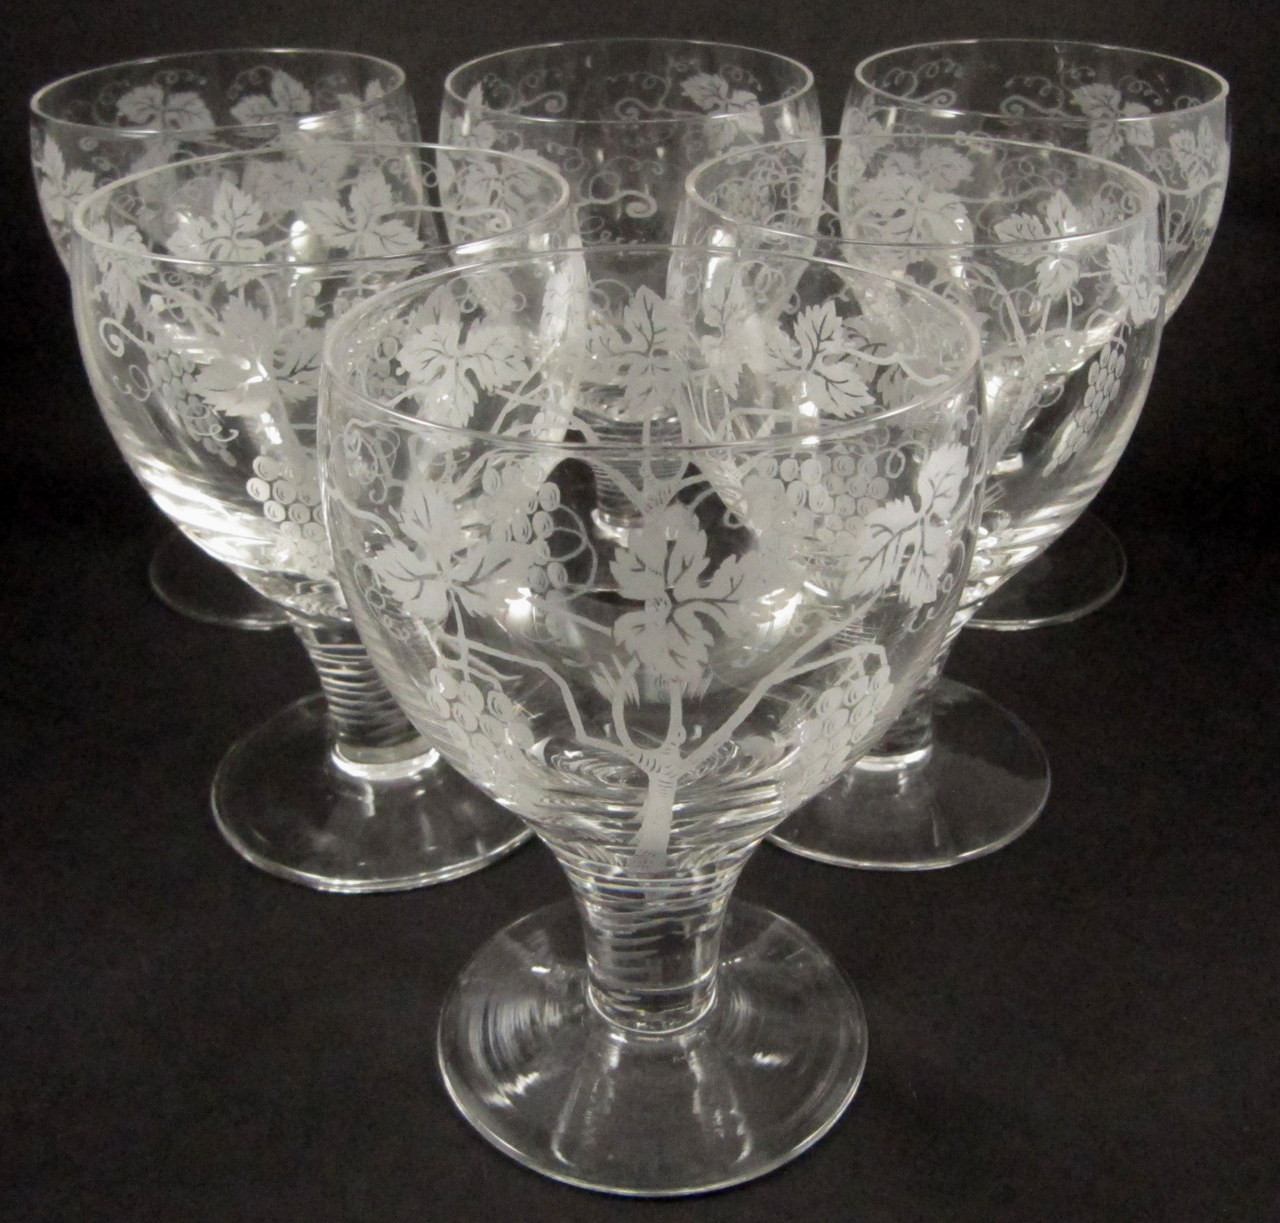 Big Red Wine Glasses 6 Vintage Stuart Crystal Grape Vine Wine Glasses In Stock